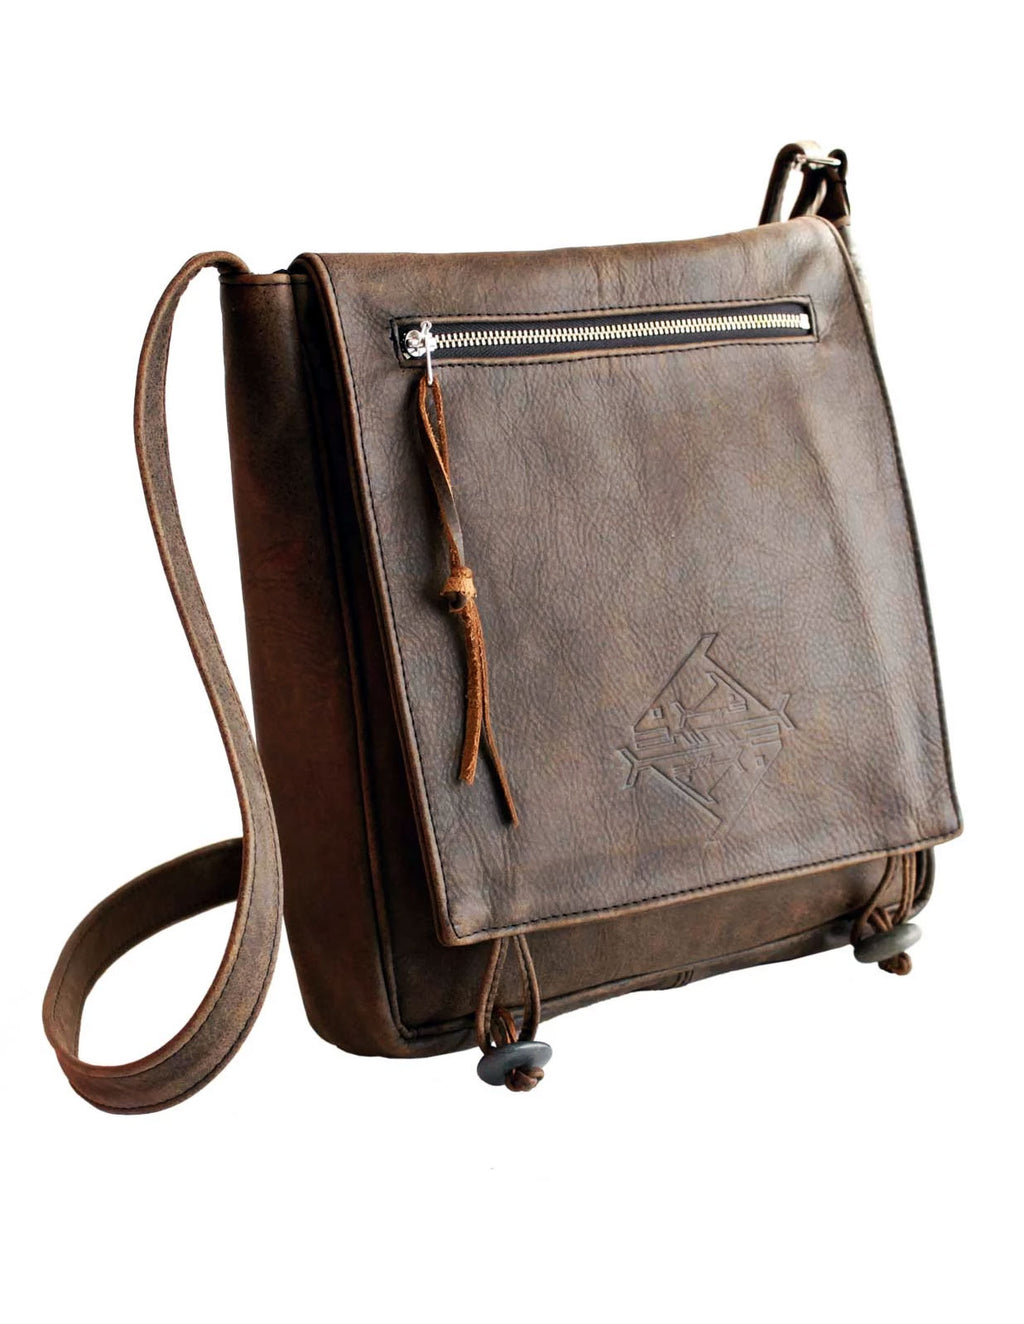 Organizer Bag - Unisex - Indian Summer's designer leather purses